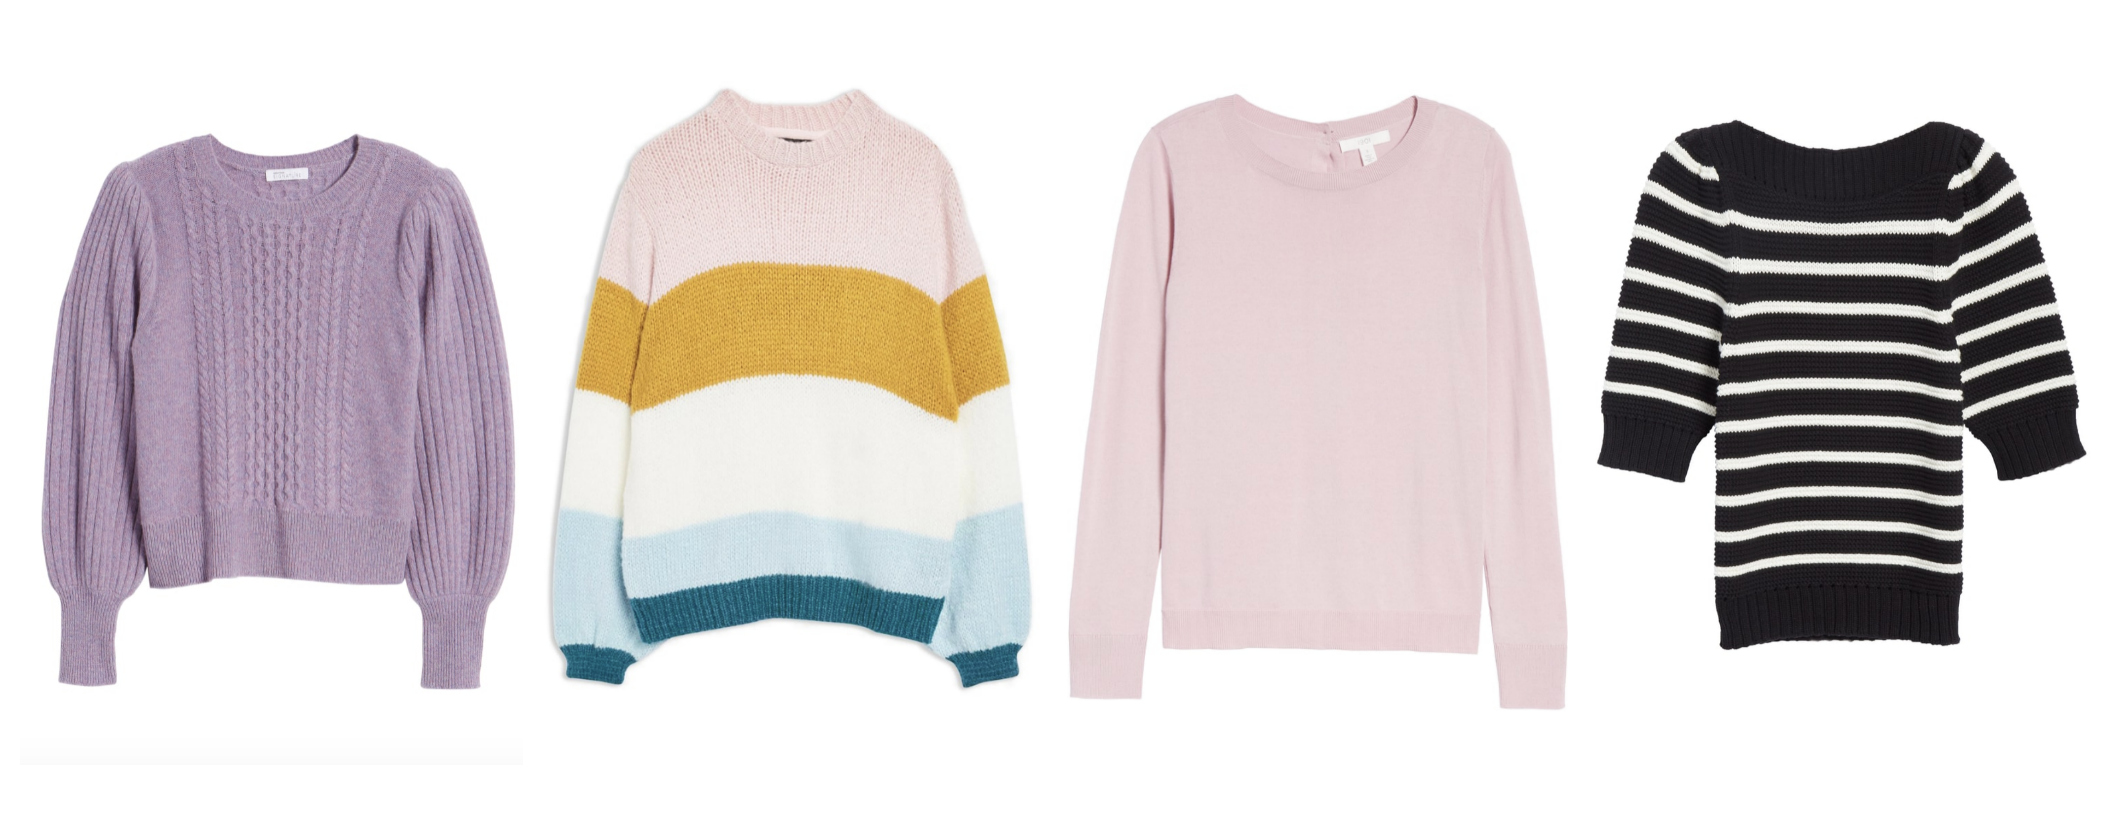 nordstrom anniversary sale picks sweaters 2018